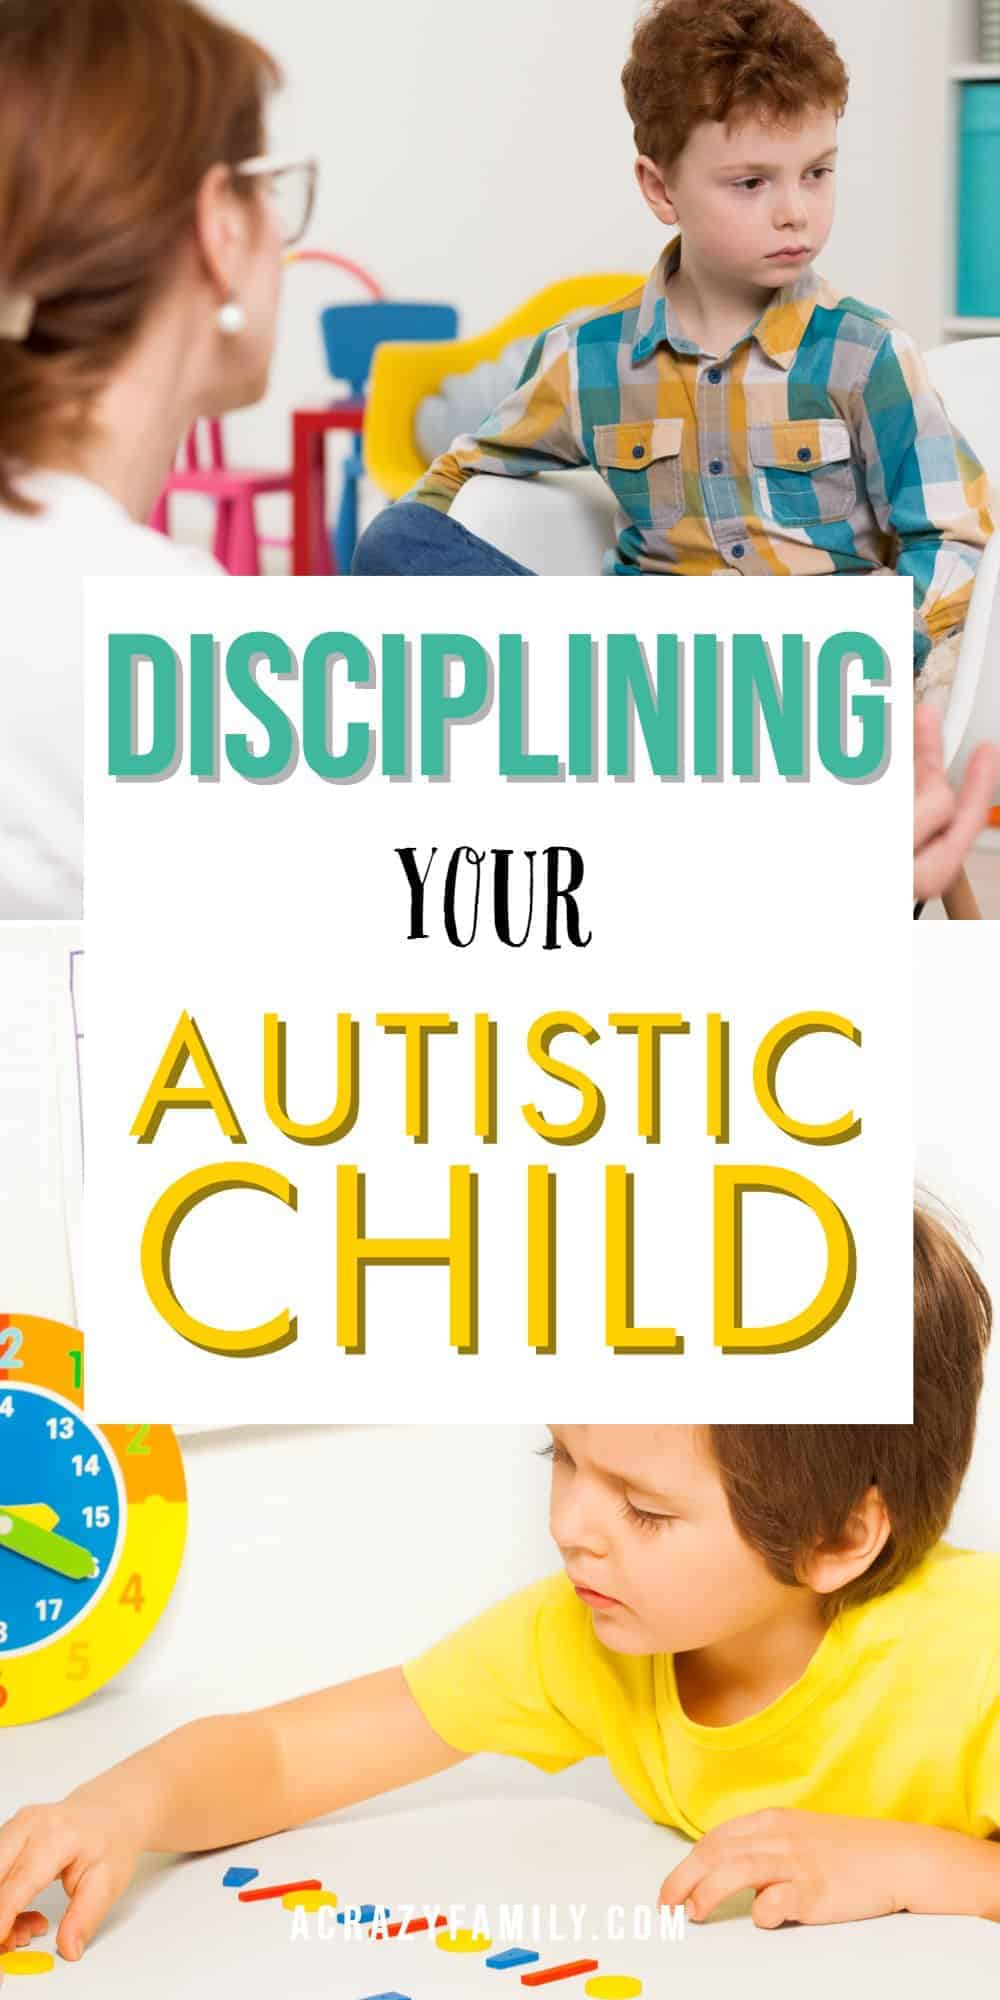 How to Discipline Your Autistic Child